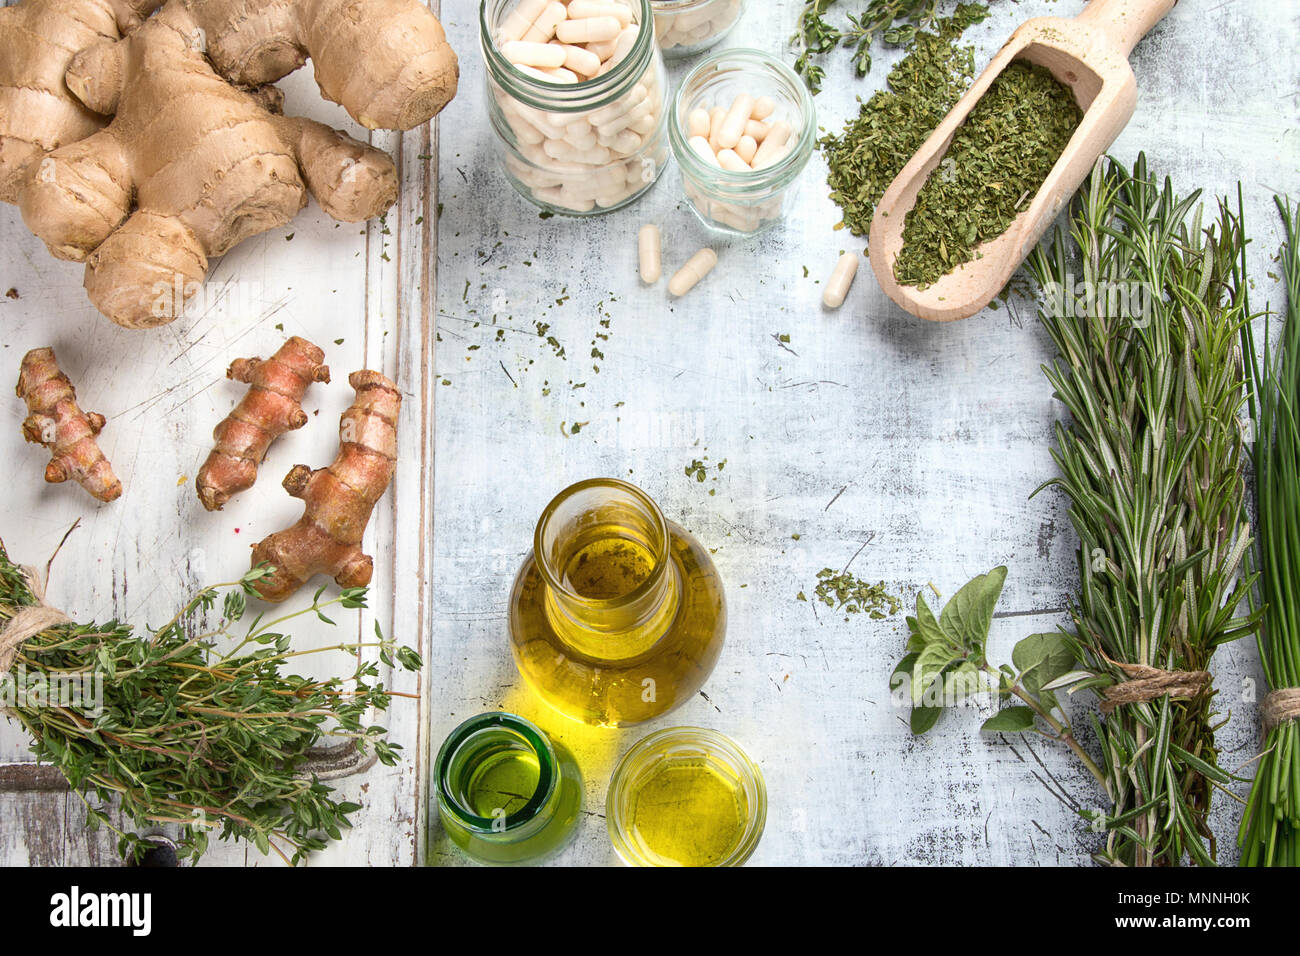 Healing herbs, essential oils and homeopathic pills. Homeopathy and Alternative Medicine - Stock Image